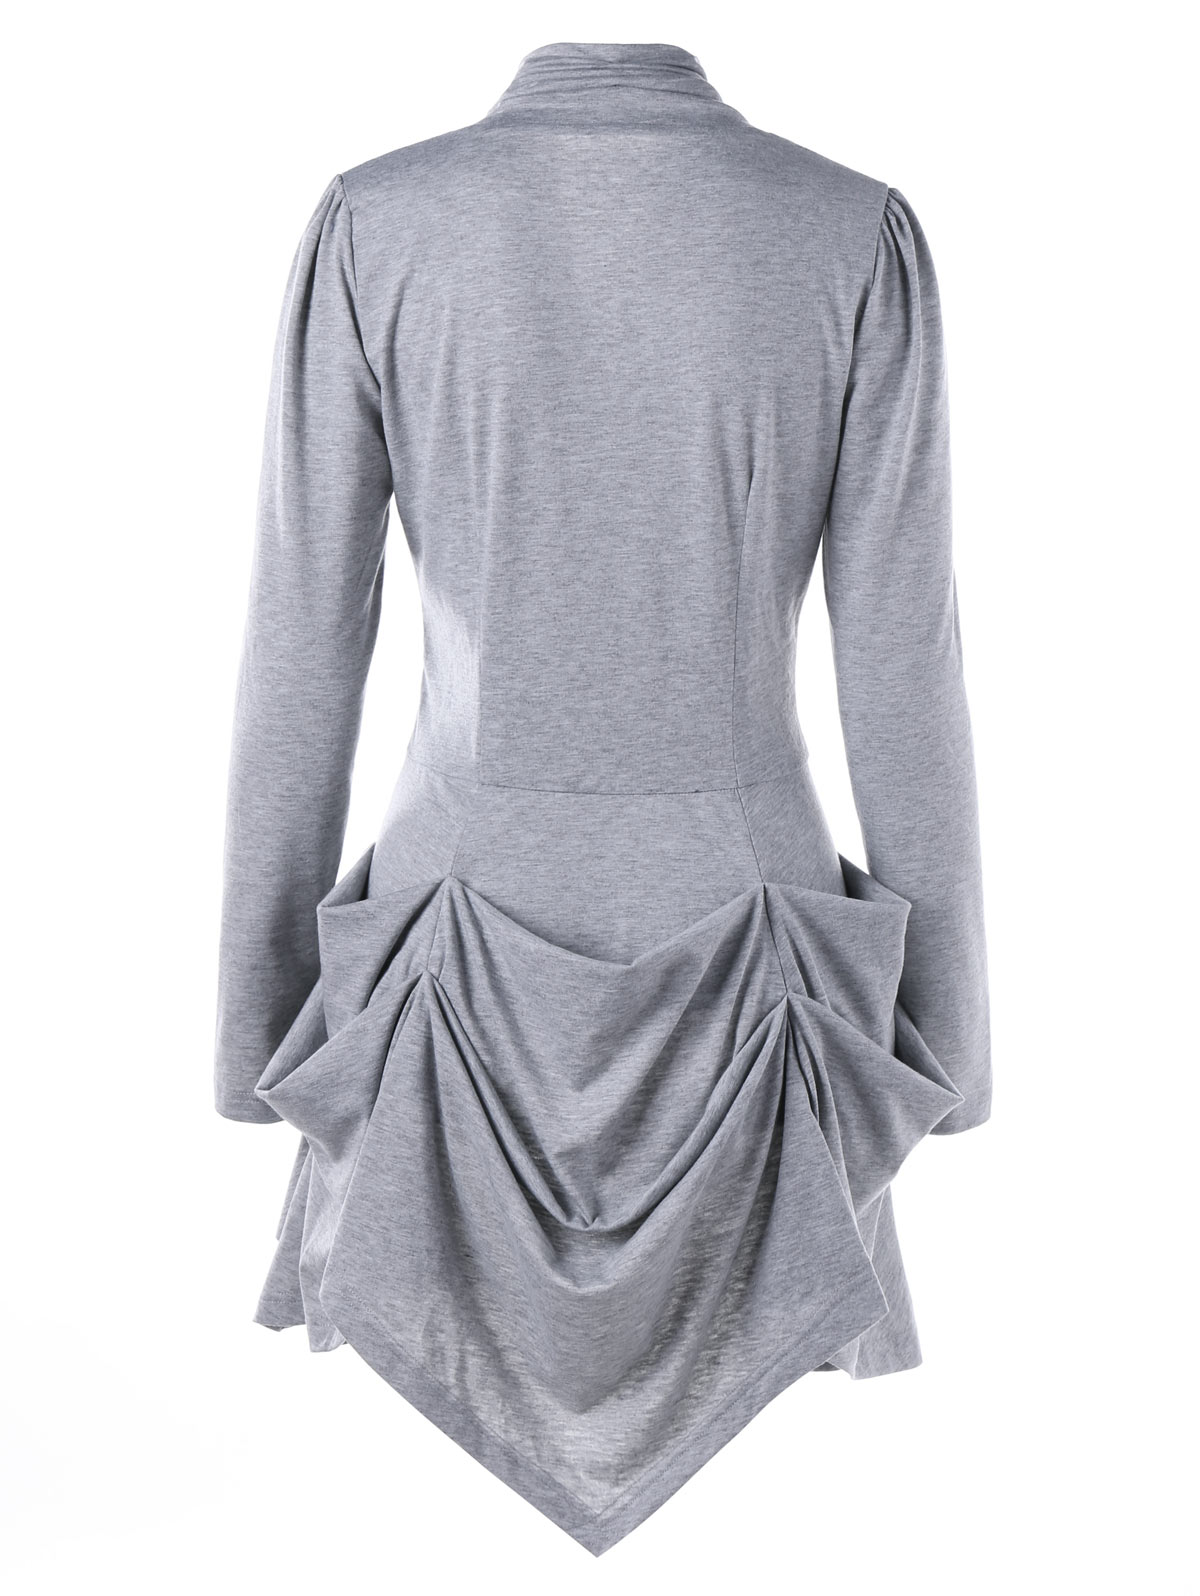 1f847f7f23f2f Gamiss Autumn Winter Women Long T Shirts Single Breasted Ruched Layered  Tops Casual Long Sleeves Female Solid Color Lady Tees-in T-Shirts from  Women s ...